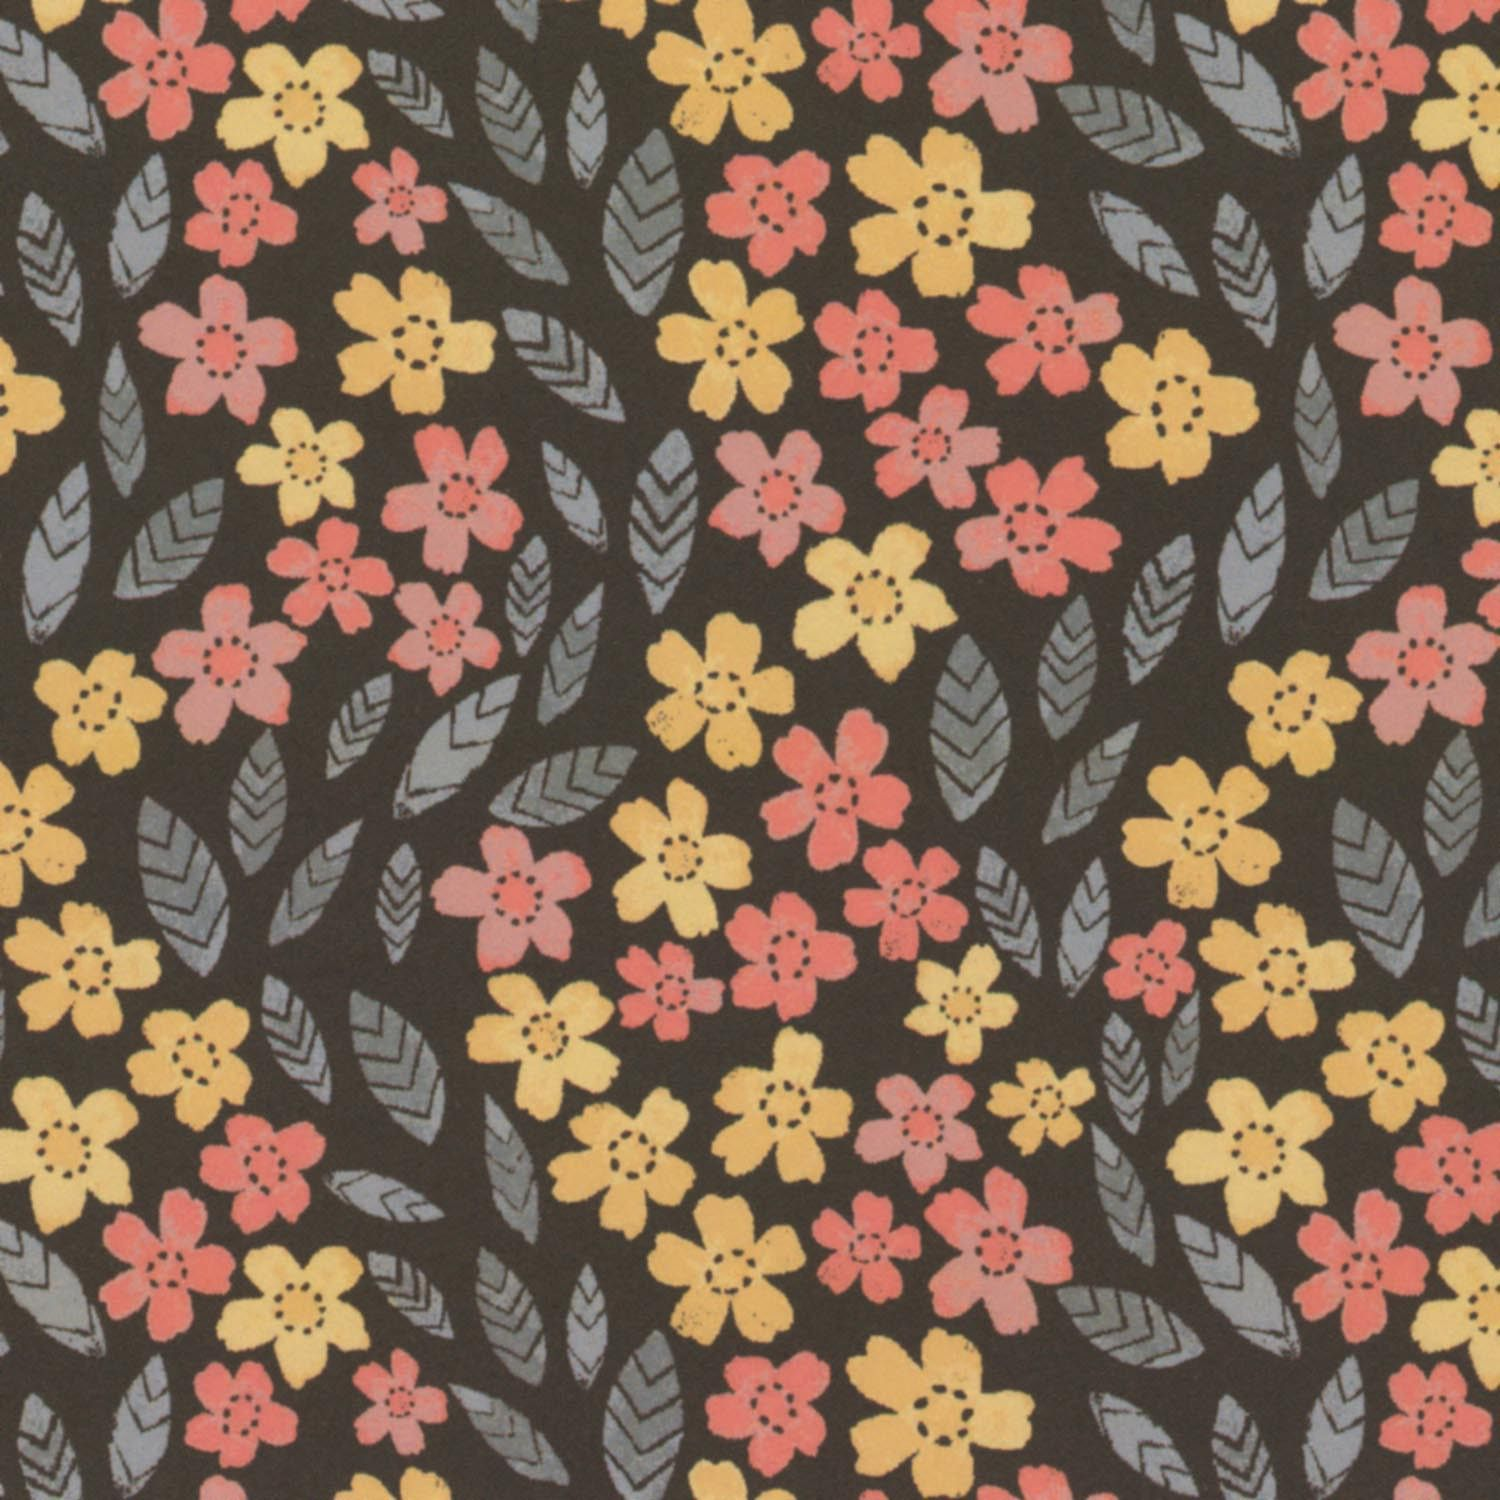 Multi Petal Trail By Ritchie, Rae  - 15yds, 100% Cotton Shirting, 44/45in, 75x75